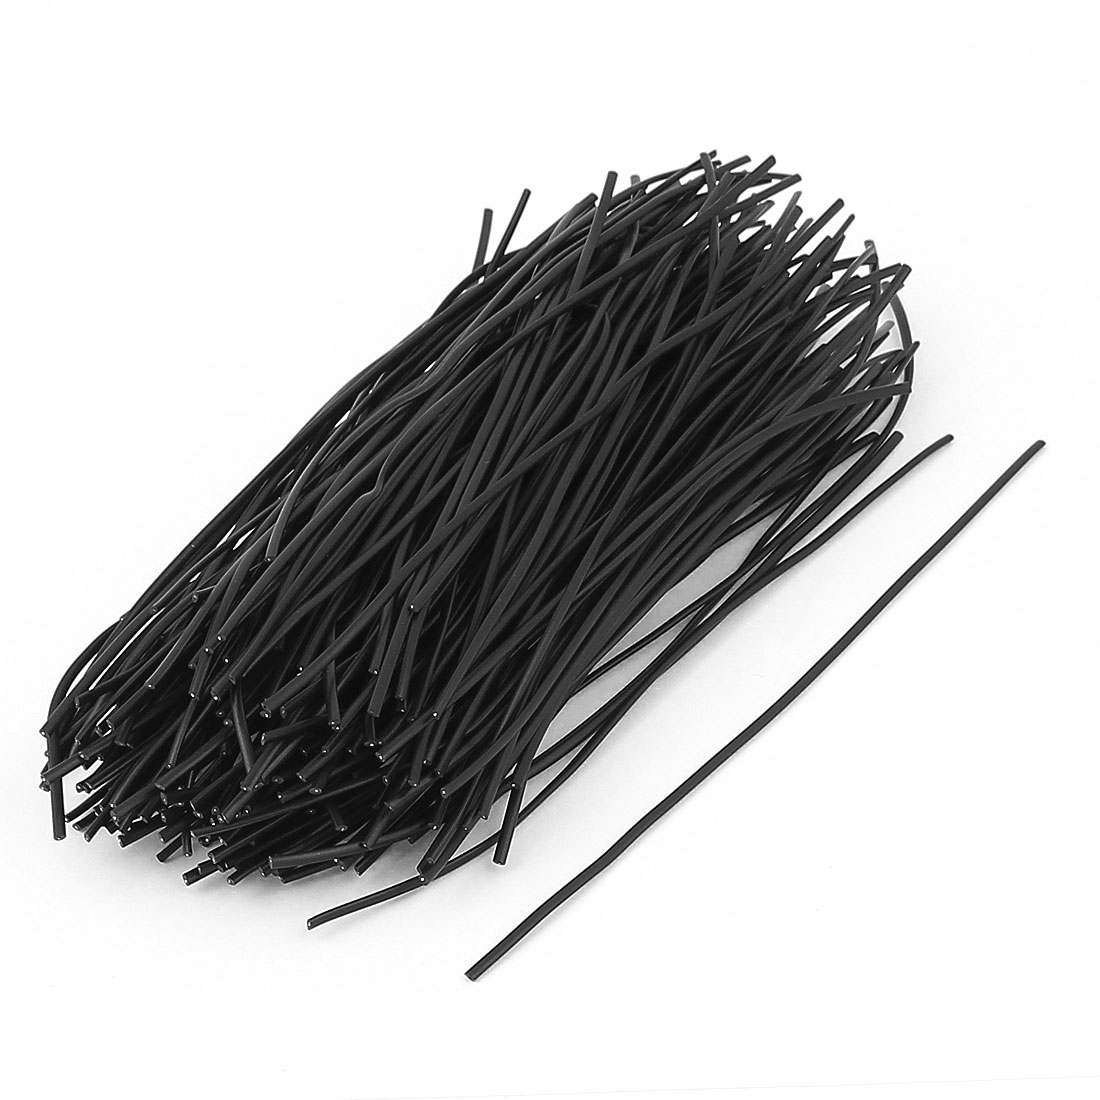 200 Pcs Plastic Shell Package Reusable Twist Ties Cable Wires Fasteners Black 150mm Long